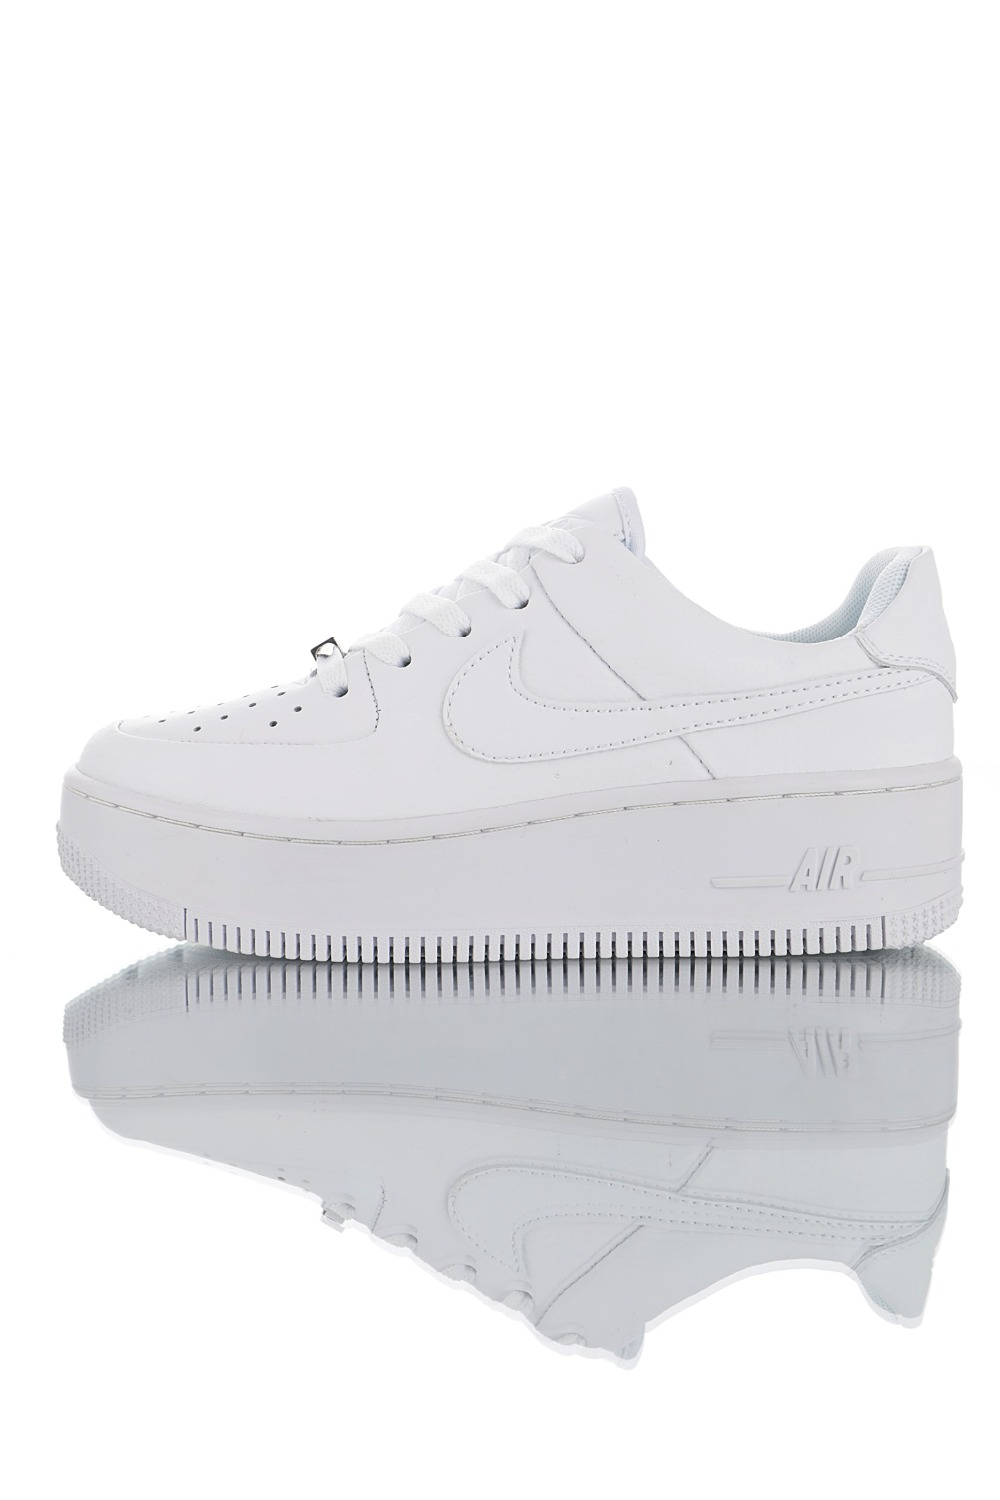 coupon for nike air force black white low 5f3c9 5e49d